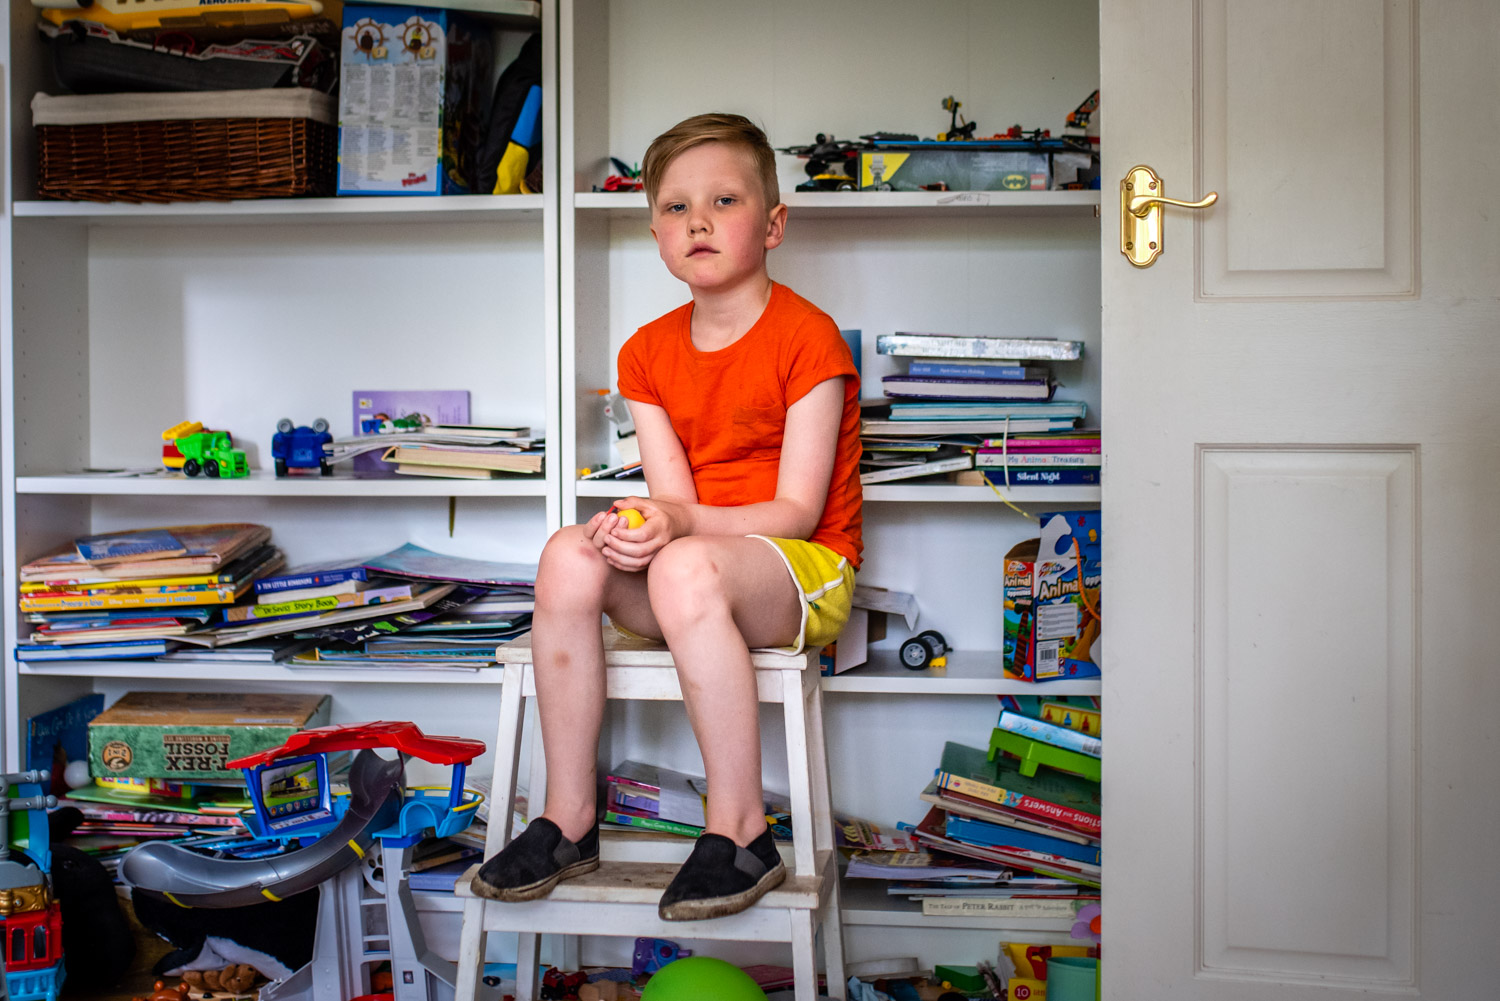 A portrait of a young boy sat on a stool in his play room surrounded by toys during this relaxed family photo shoot in Manchester, UK.